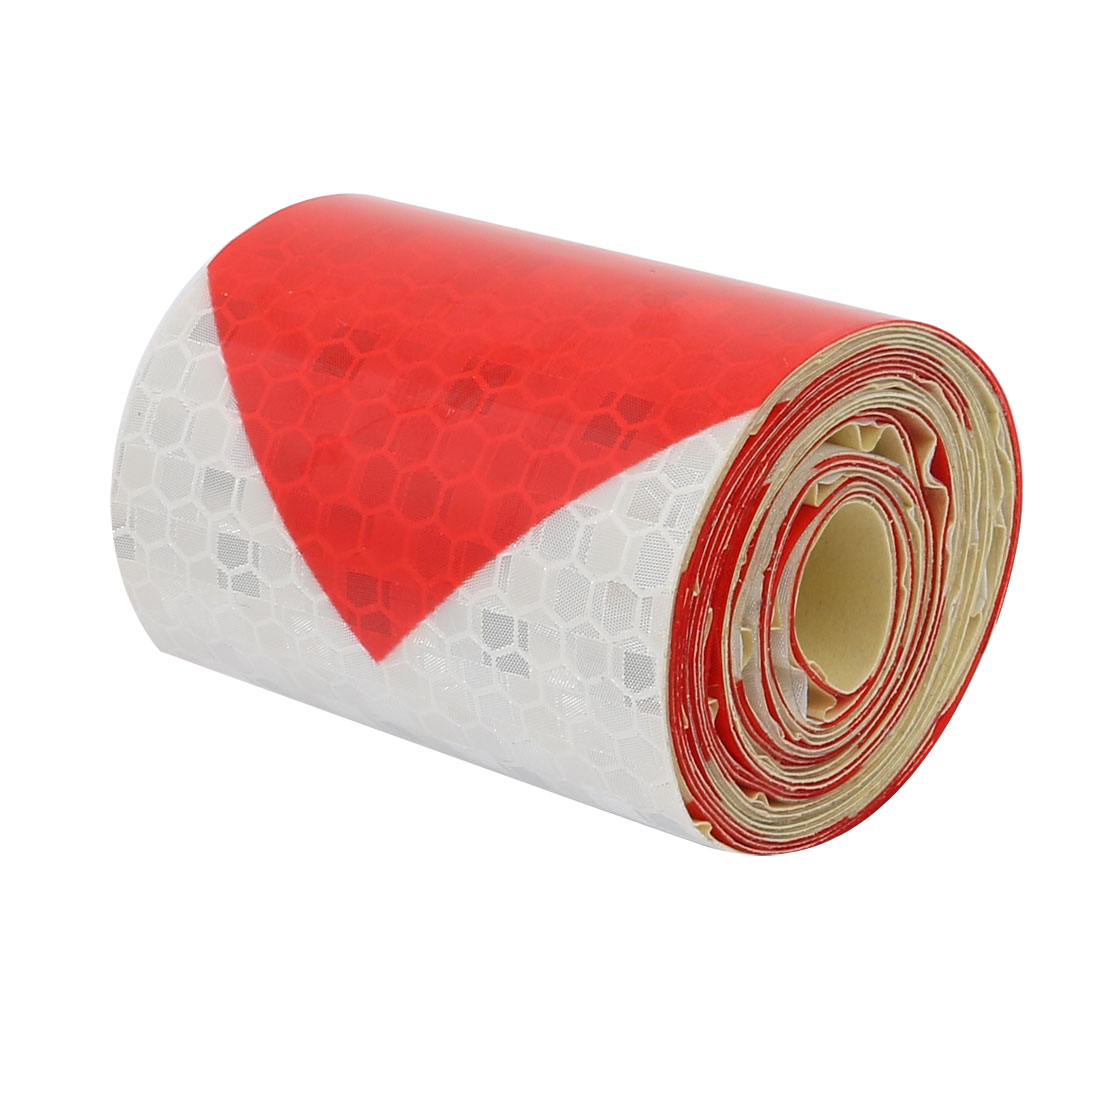 5cm Wide 2Meter Length Honeycomb Adhesive Reflective Warning Tape Red White